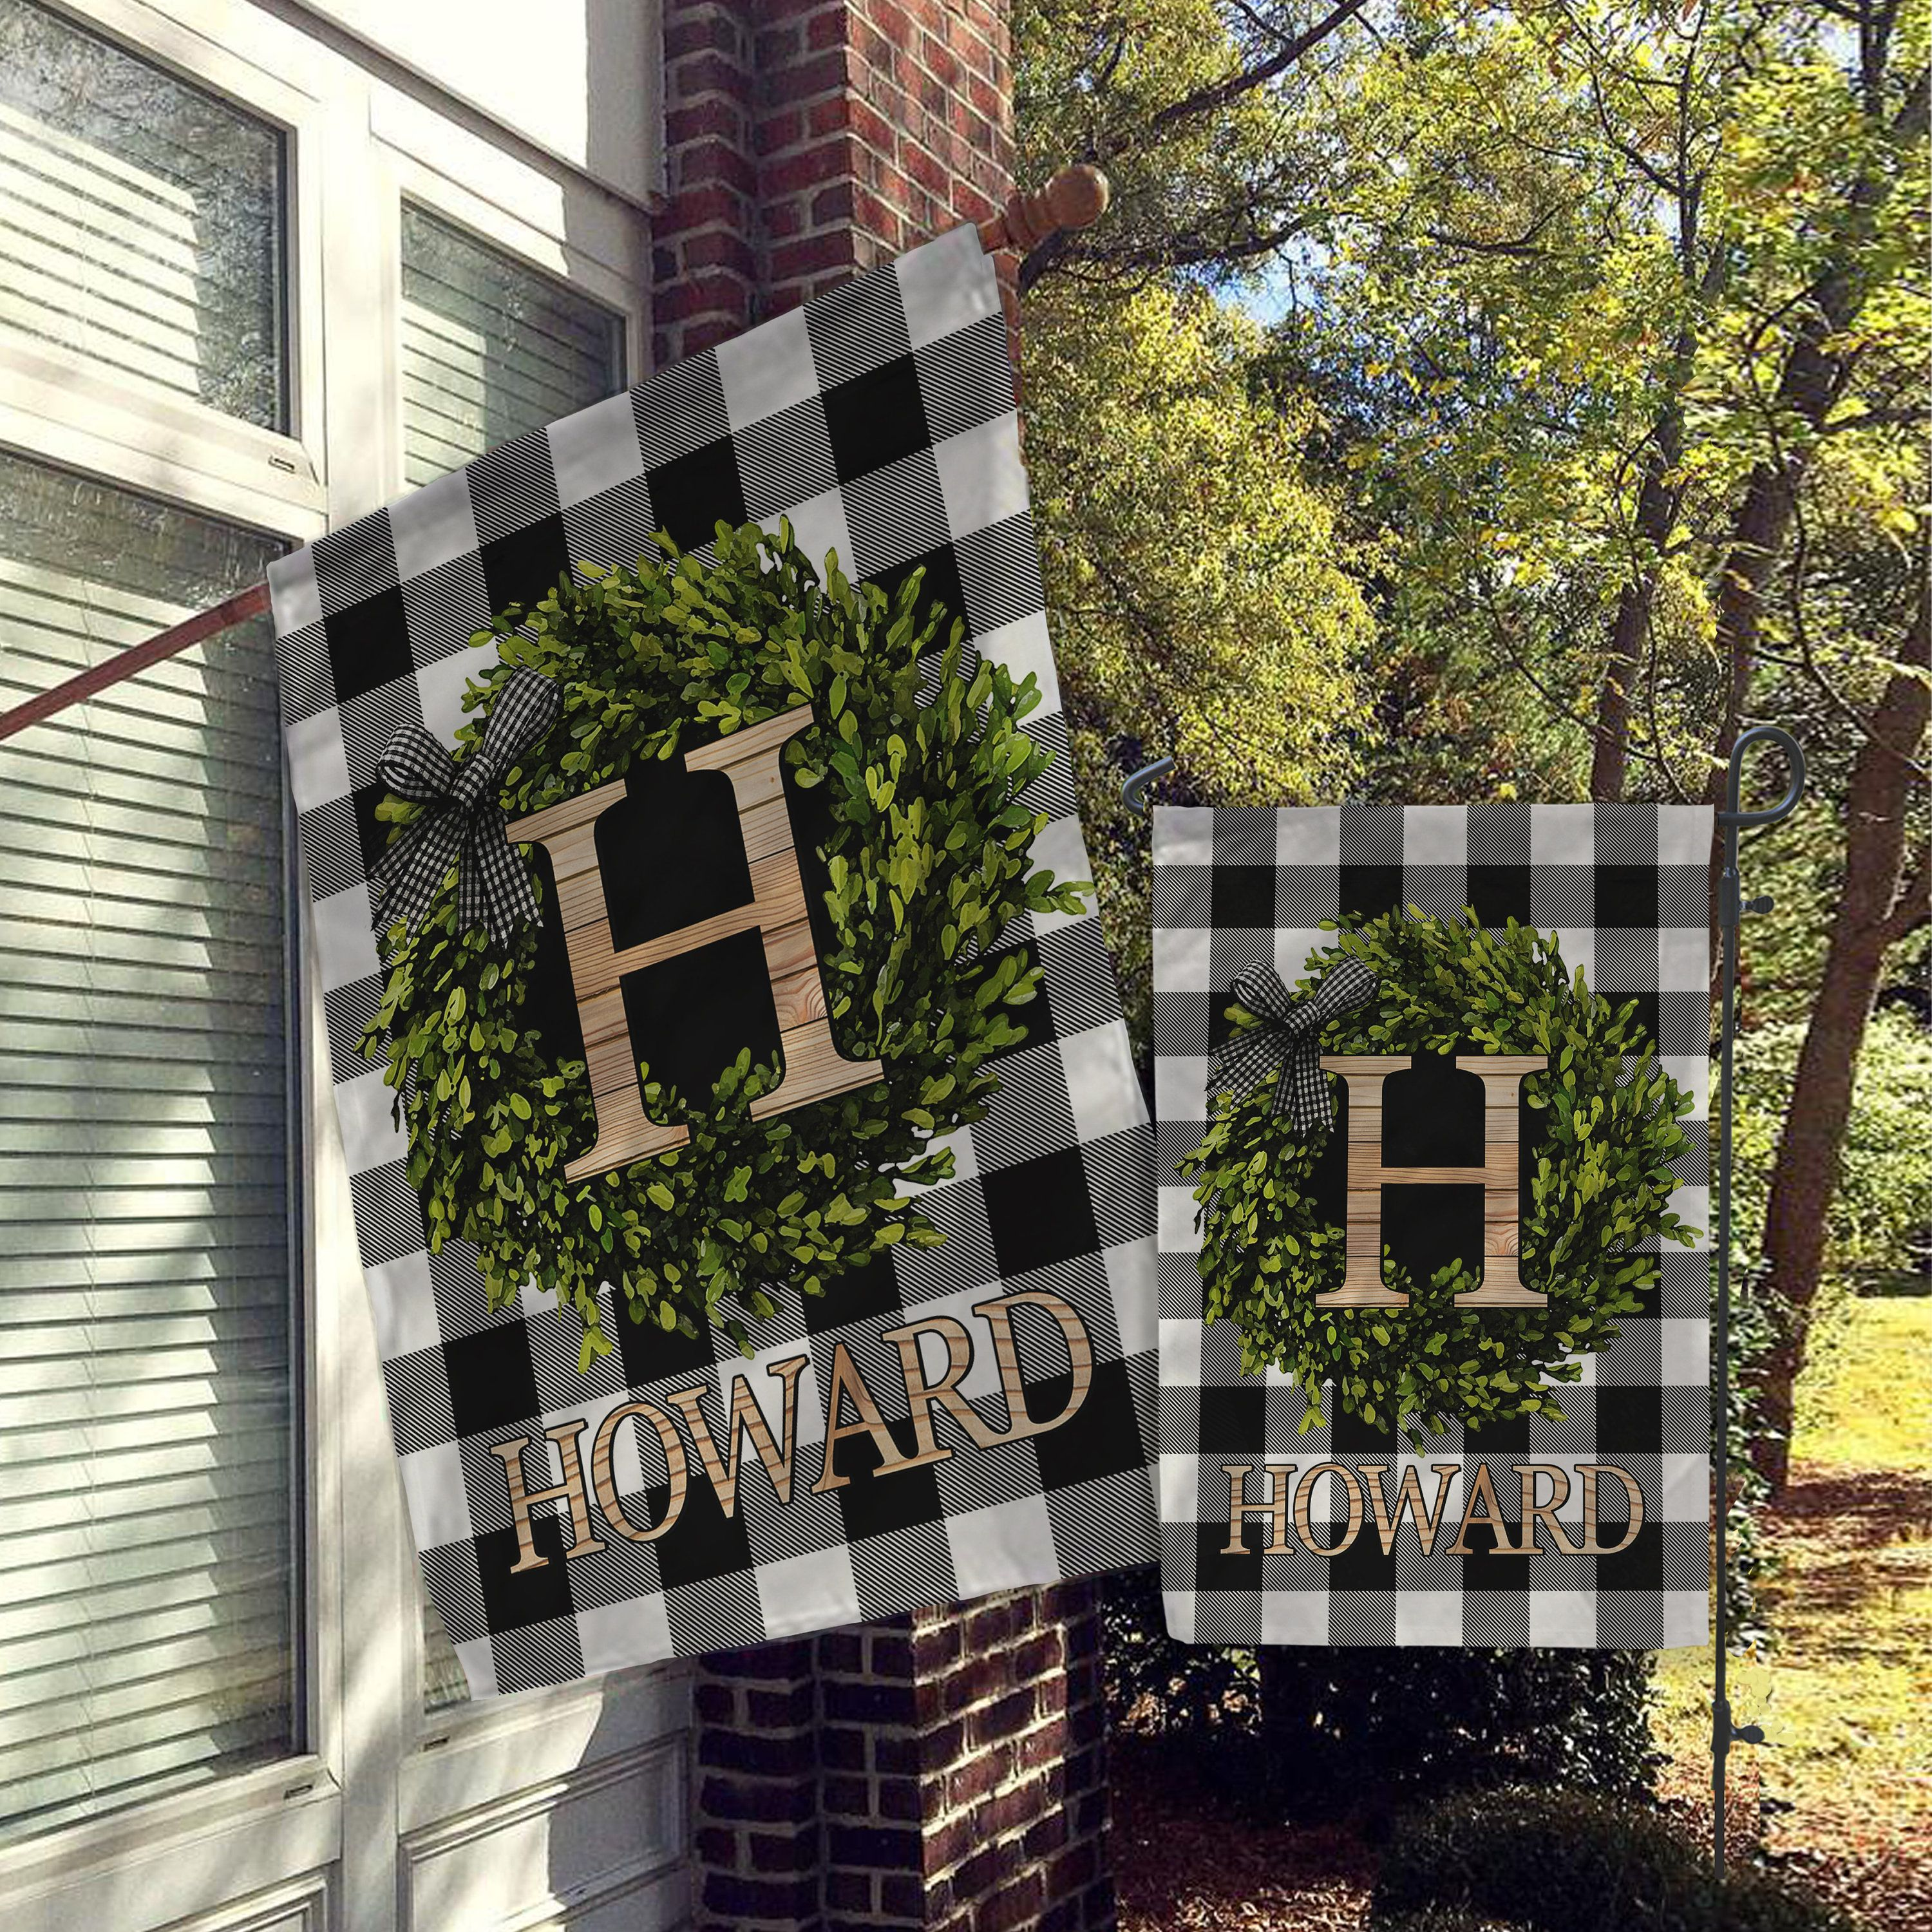 Personalized Flag Welcome Garden Flags Welcome House Flag Etsy In 2020 Farmhouse Garden Personalized Flag House Flags